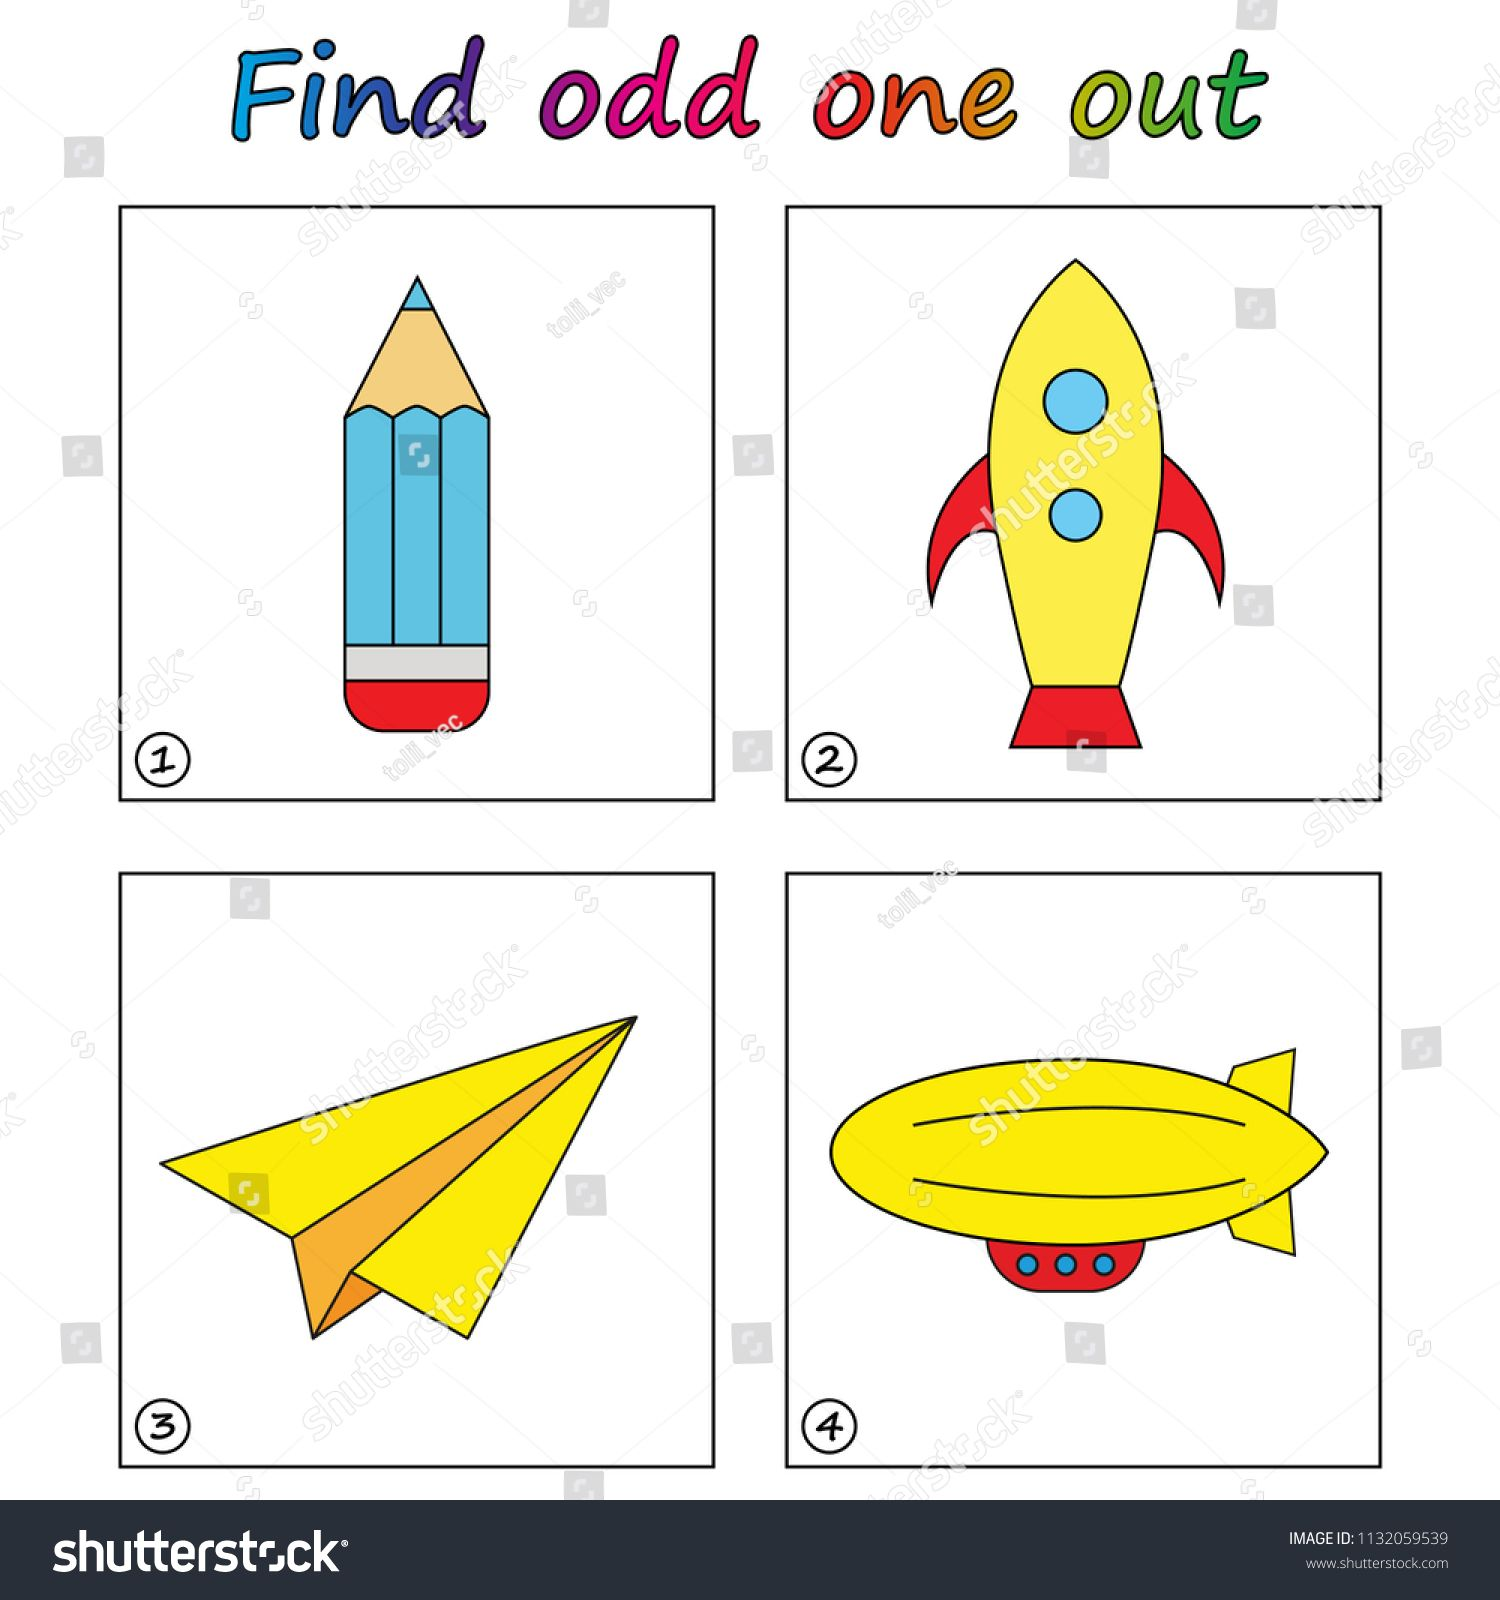 Find Odd One Out Game For Kids Worksheet Visual Educational Game For Children A Math Activities Preschool Educational Games For Kids Preschool Activities [ 1600 x 1500 Pixel ]